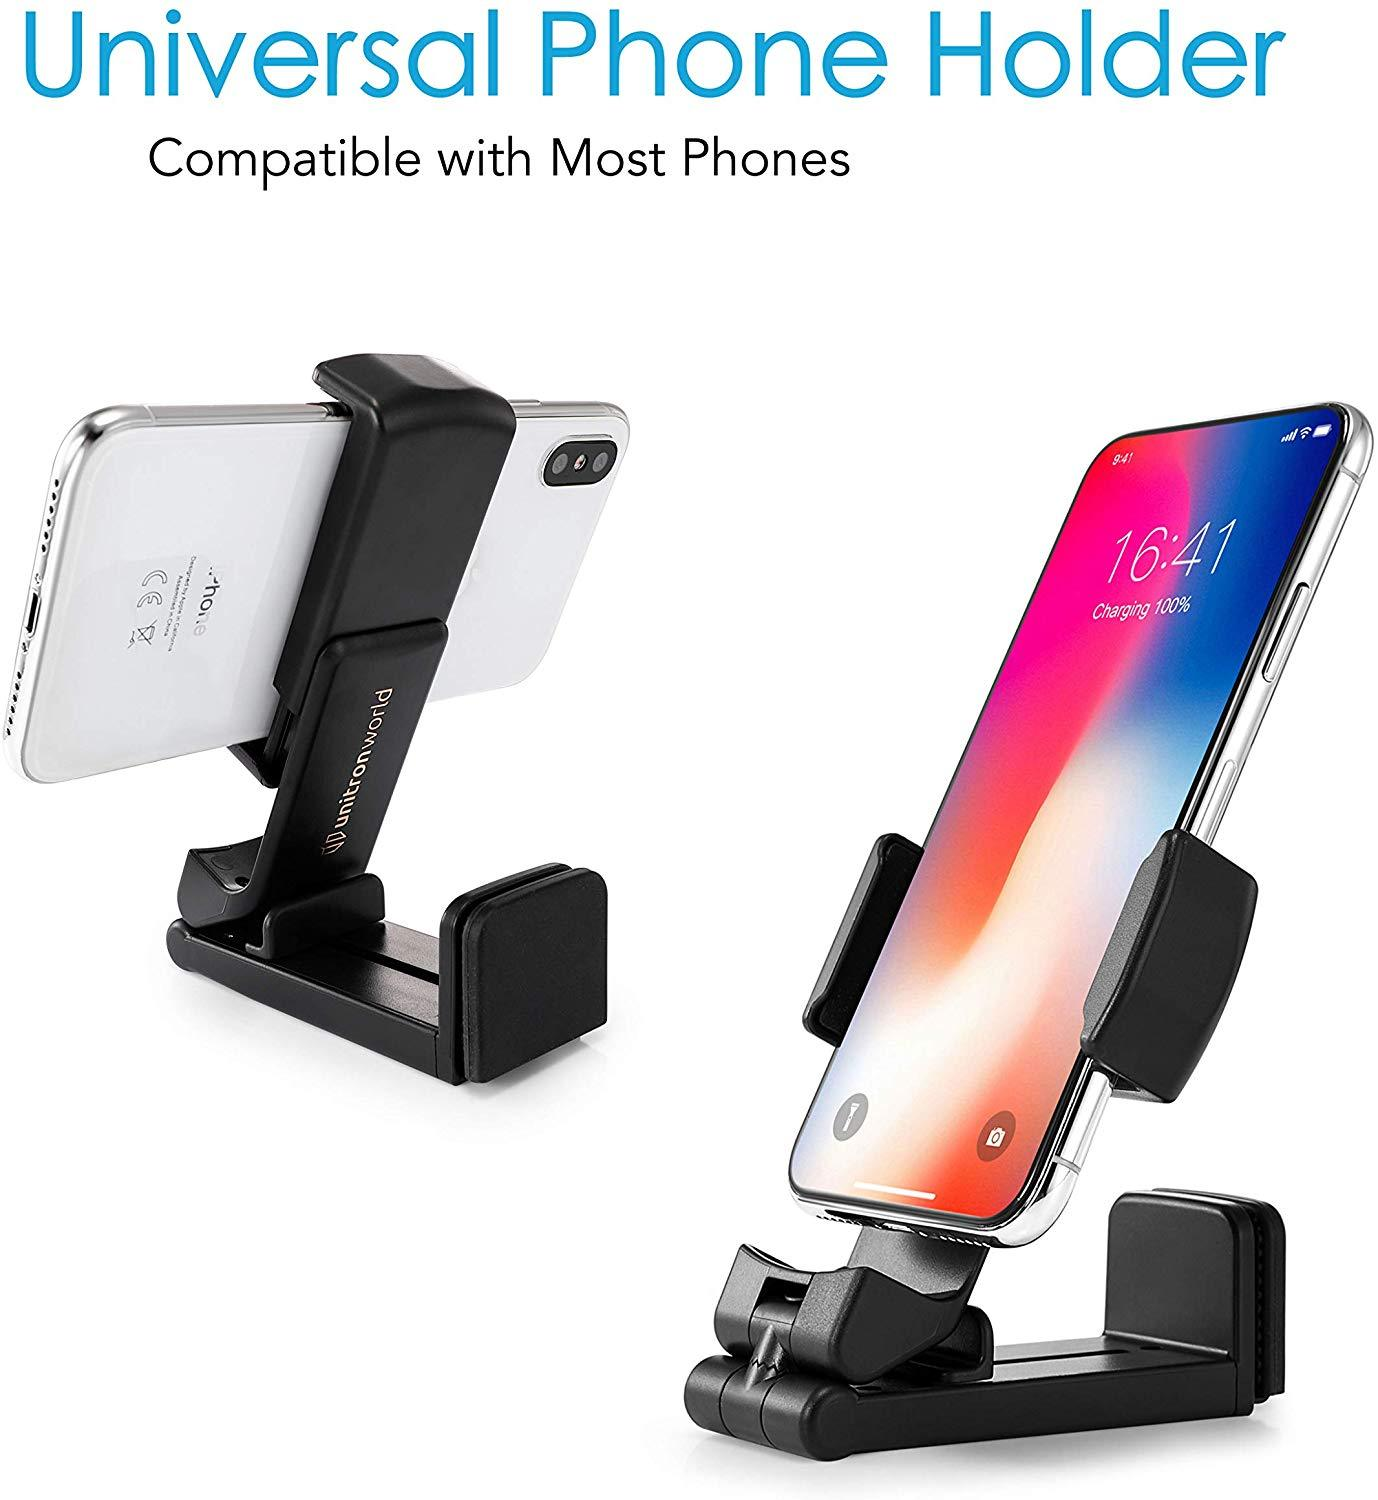 unitron world Universal Cell Phone Stand Phone Holder for Desk Airplane Flight, And Travel